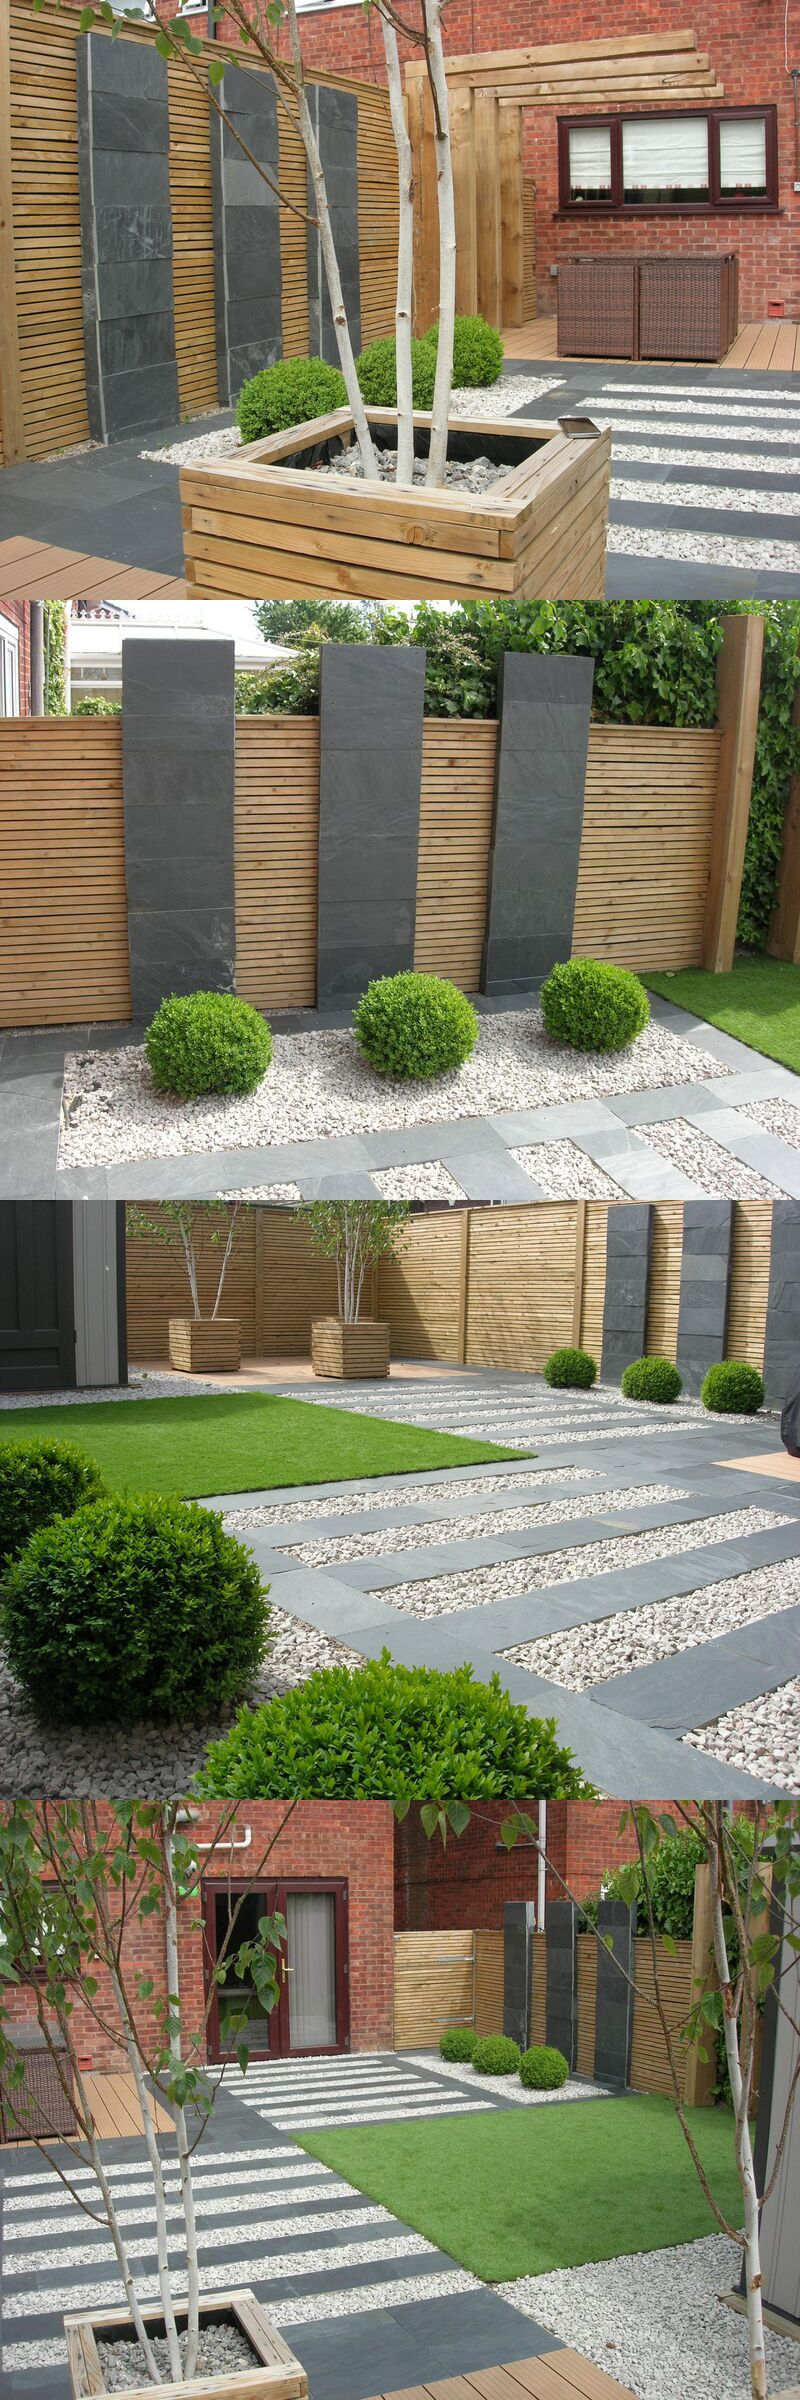 Chic modern garden design in chelsea by declan buckley with steps and - Black Slate Flagstones Modern Patio Landscaping Garden Design Mjm Landscapes